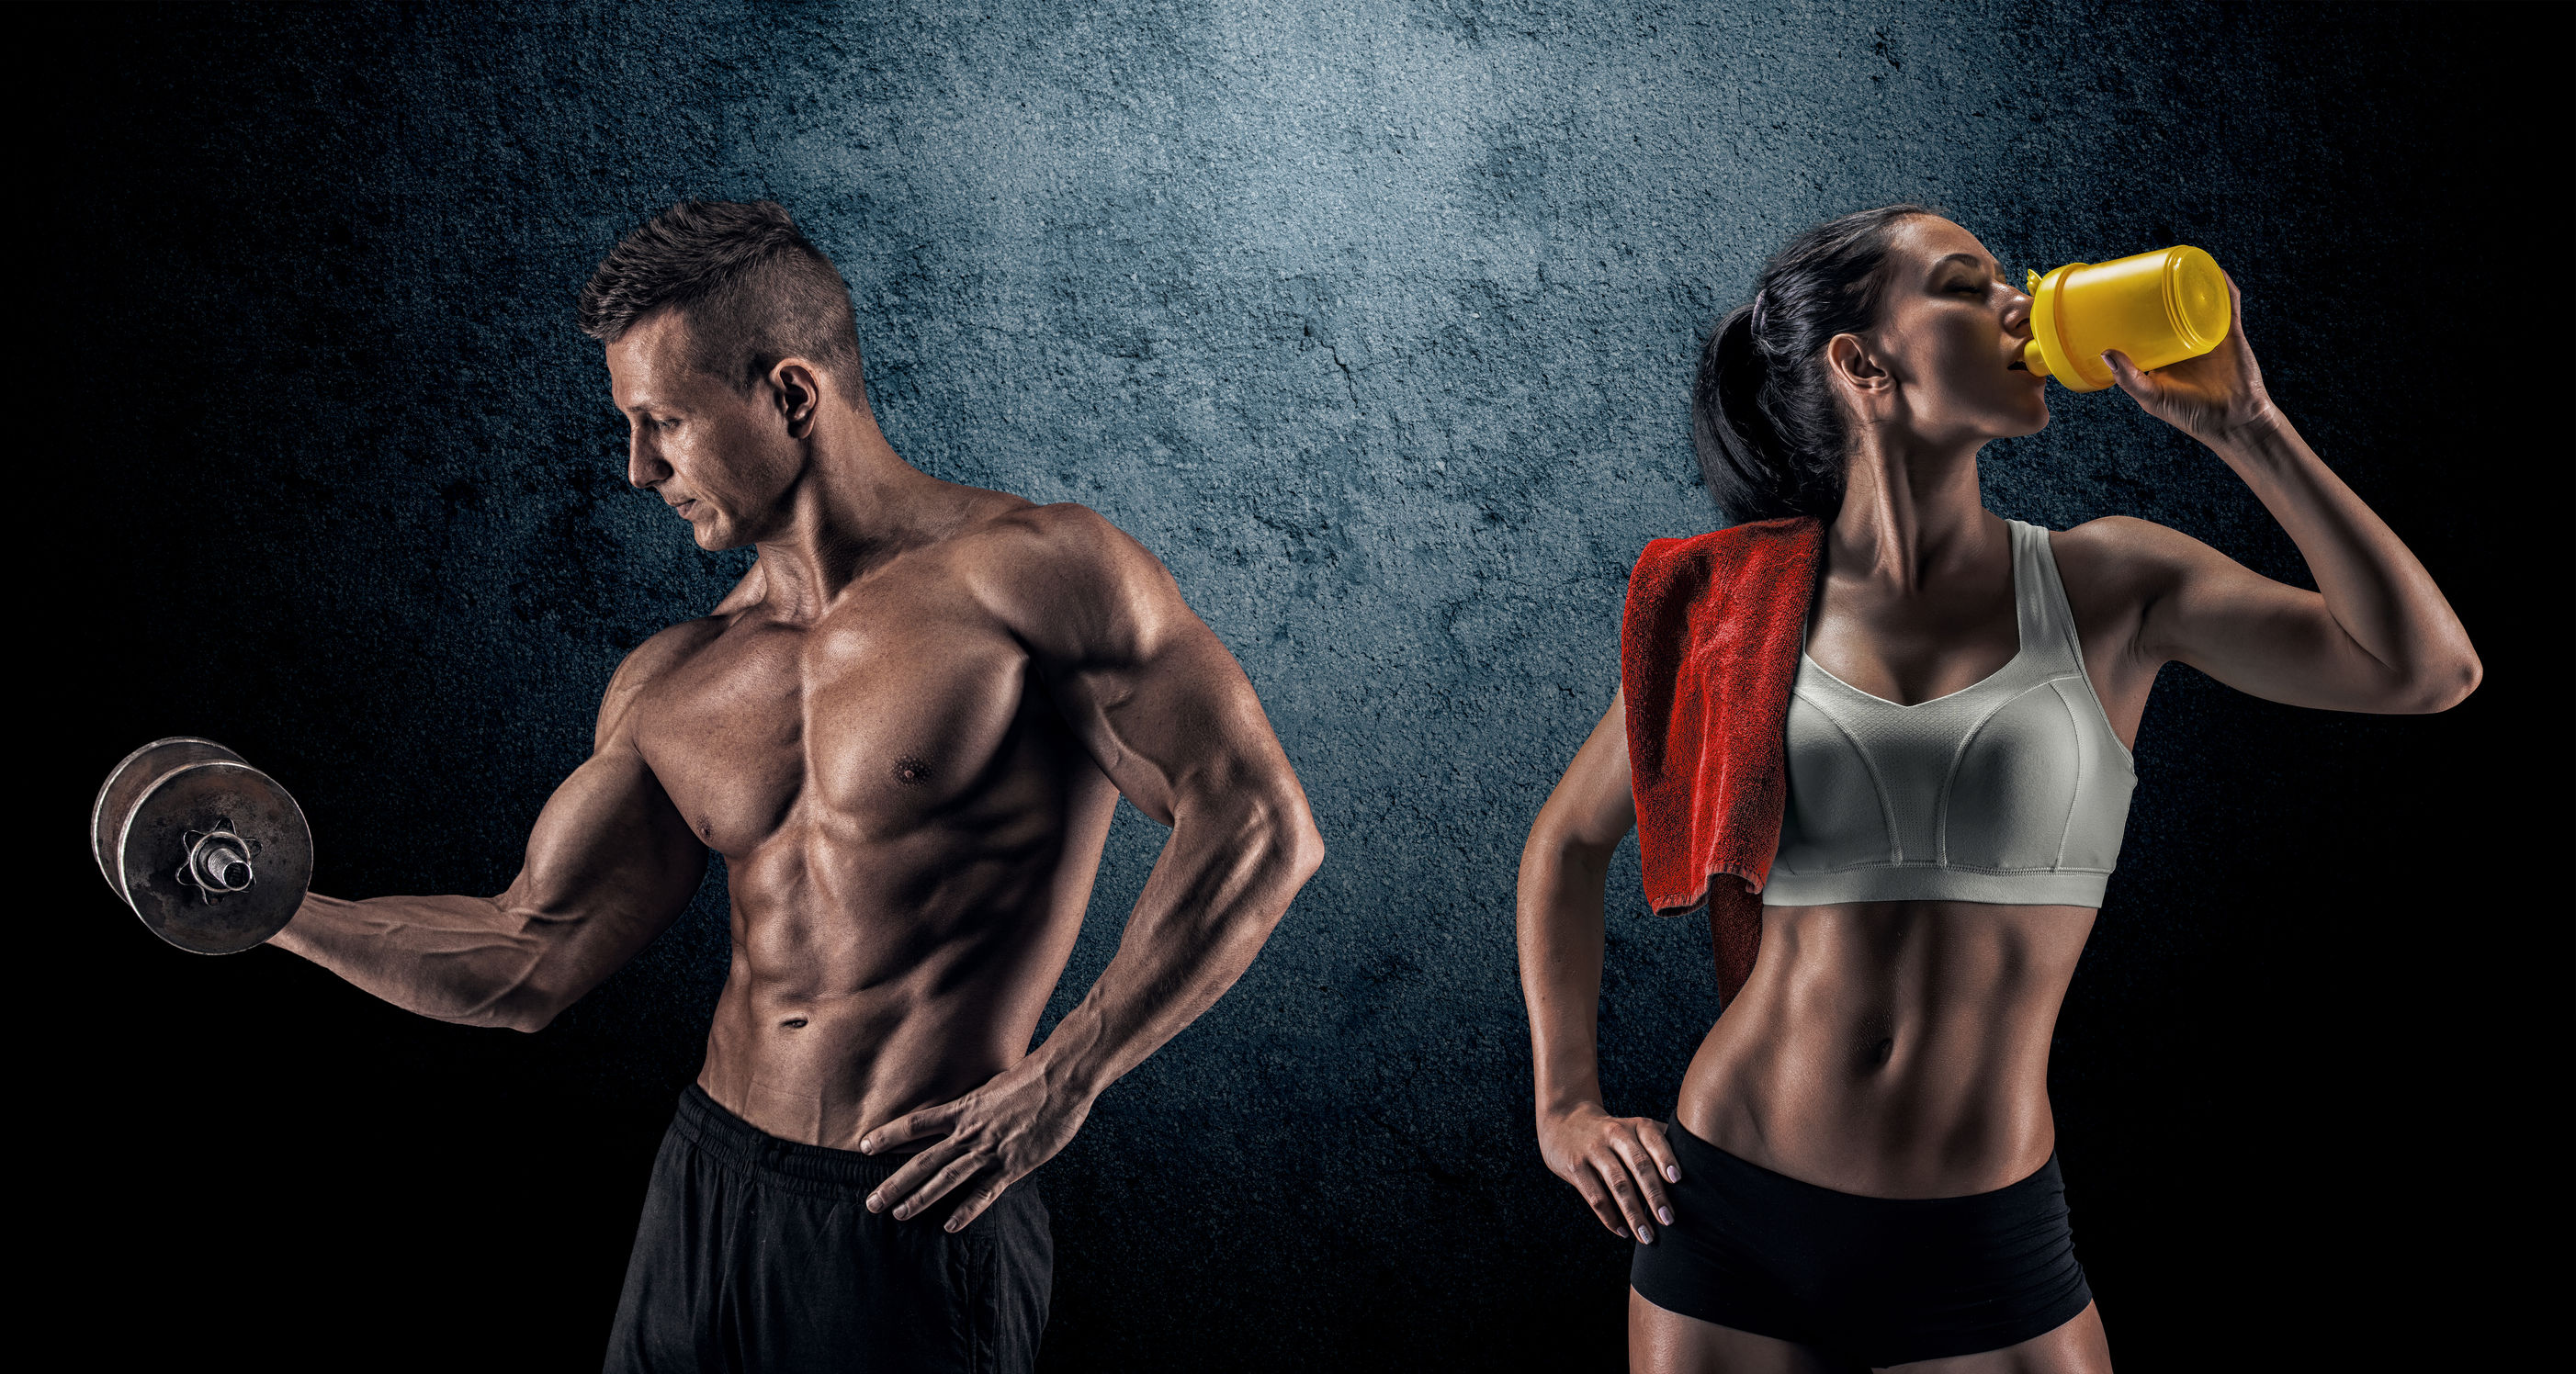 44310986 - bodybuilding. strong man and a woman posing on a dark background